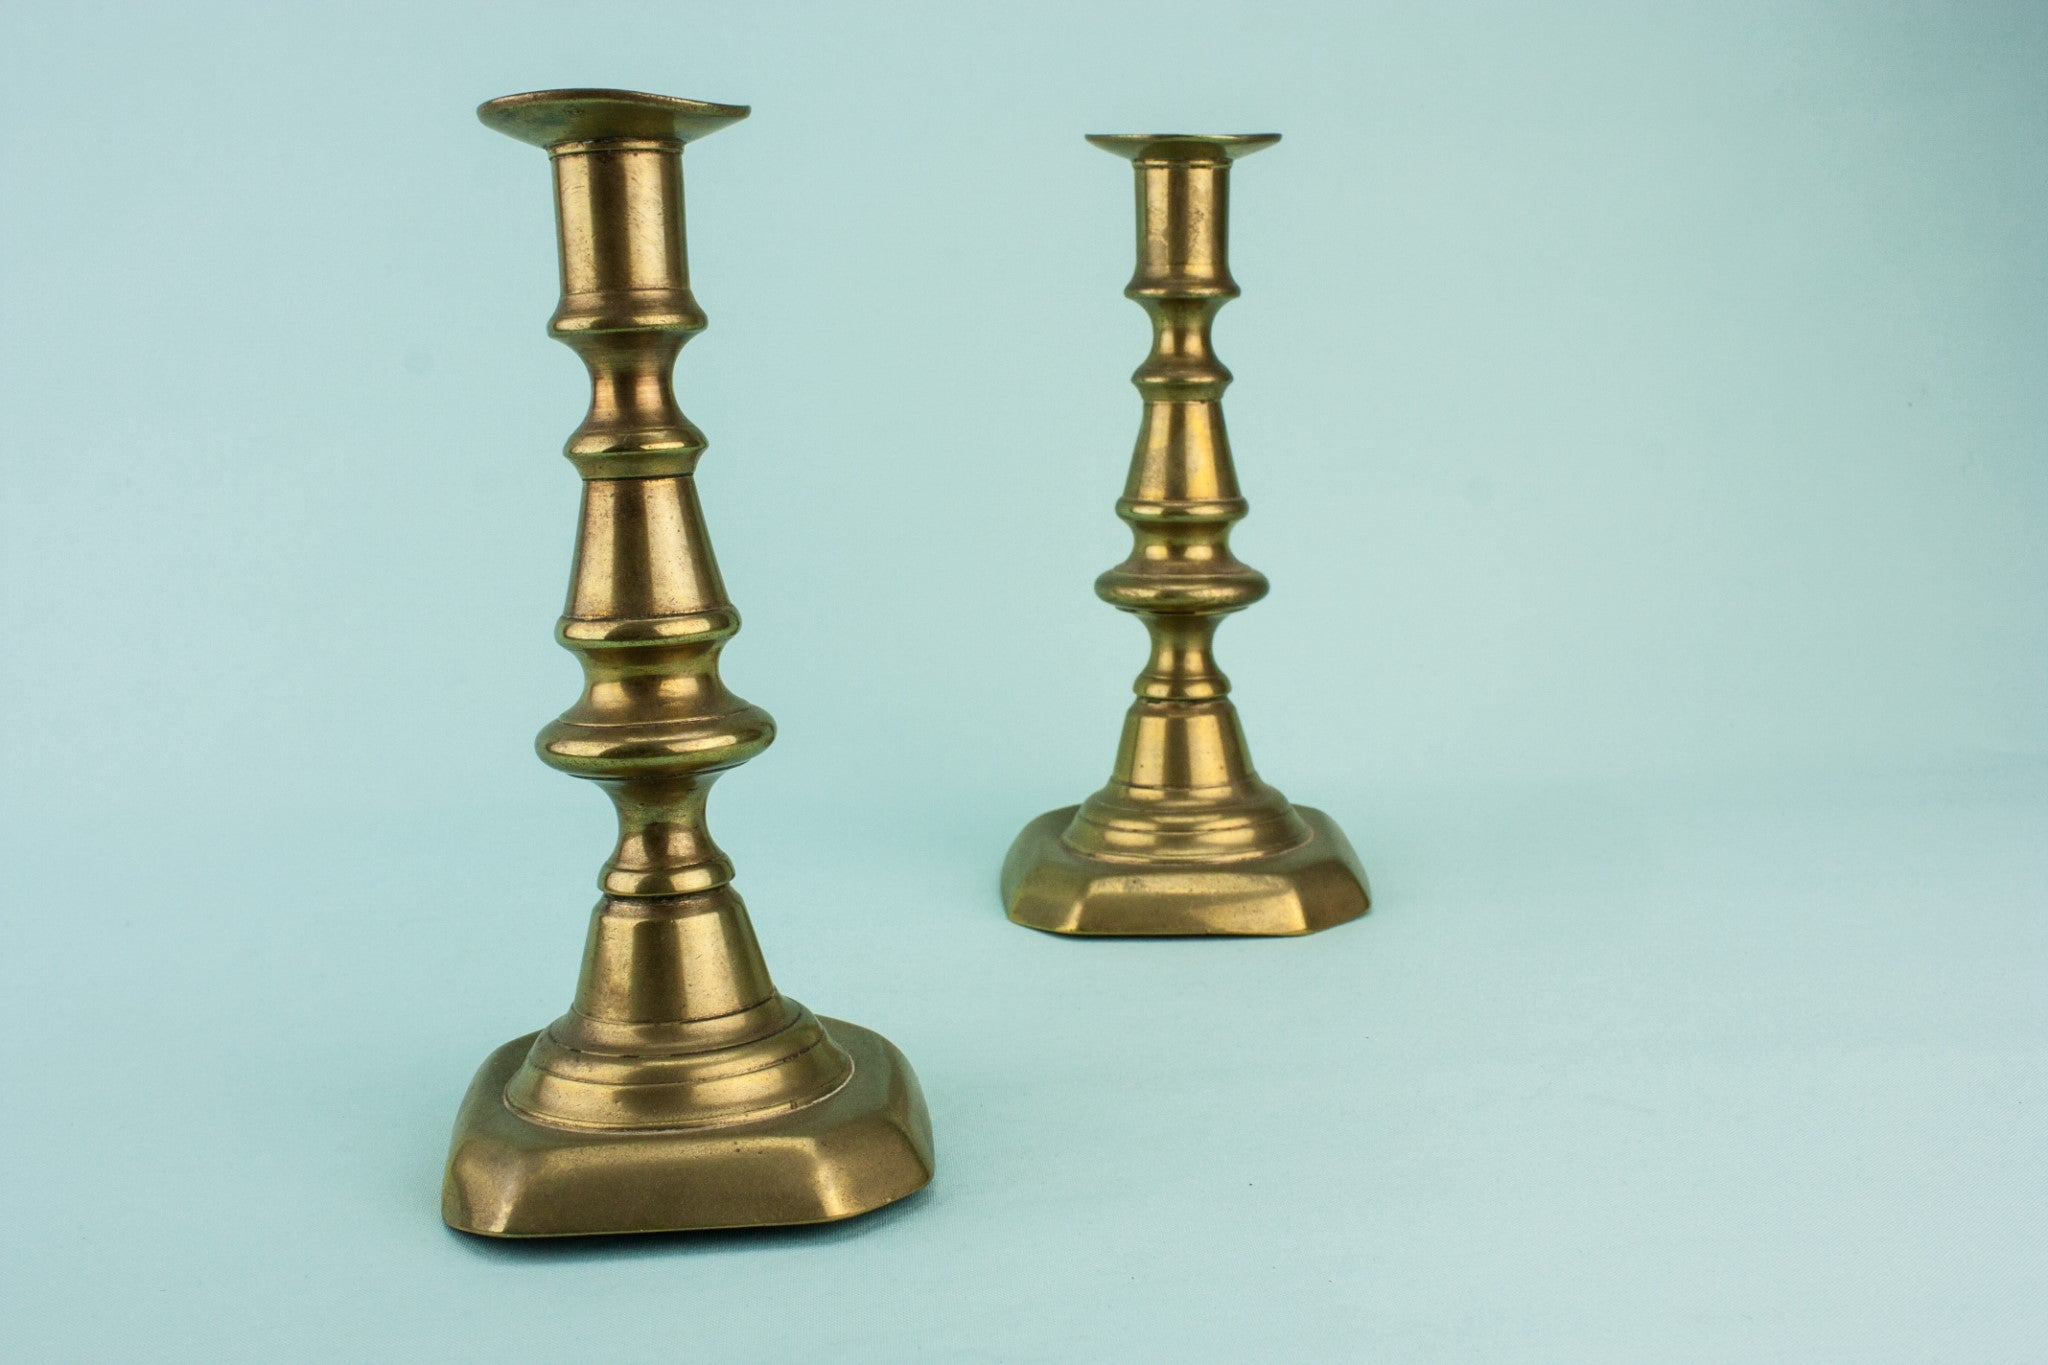 2 brass medium candlesticks